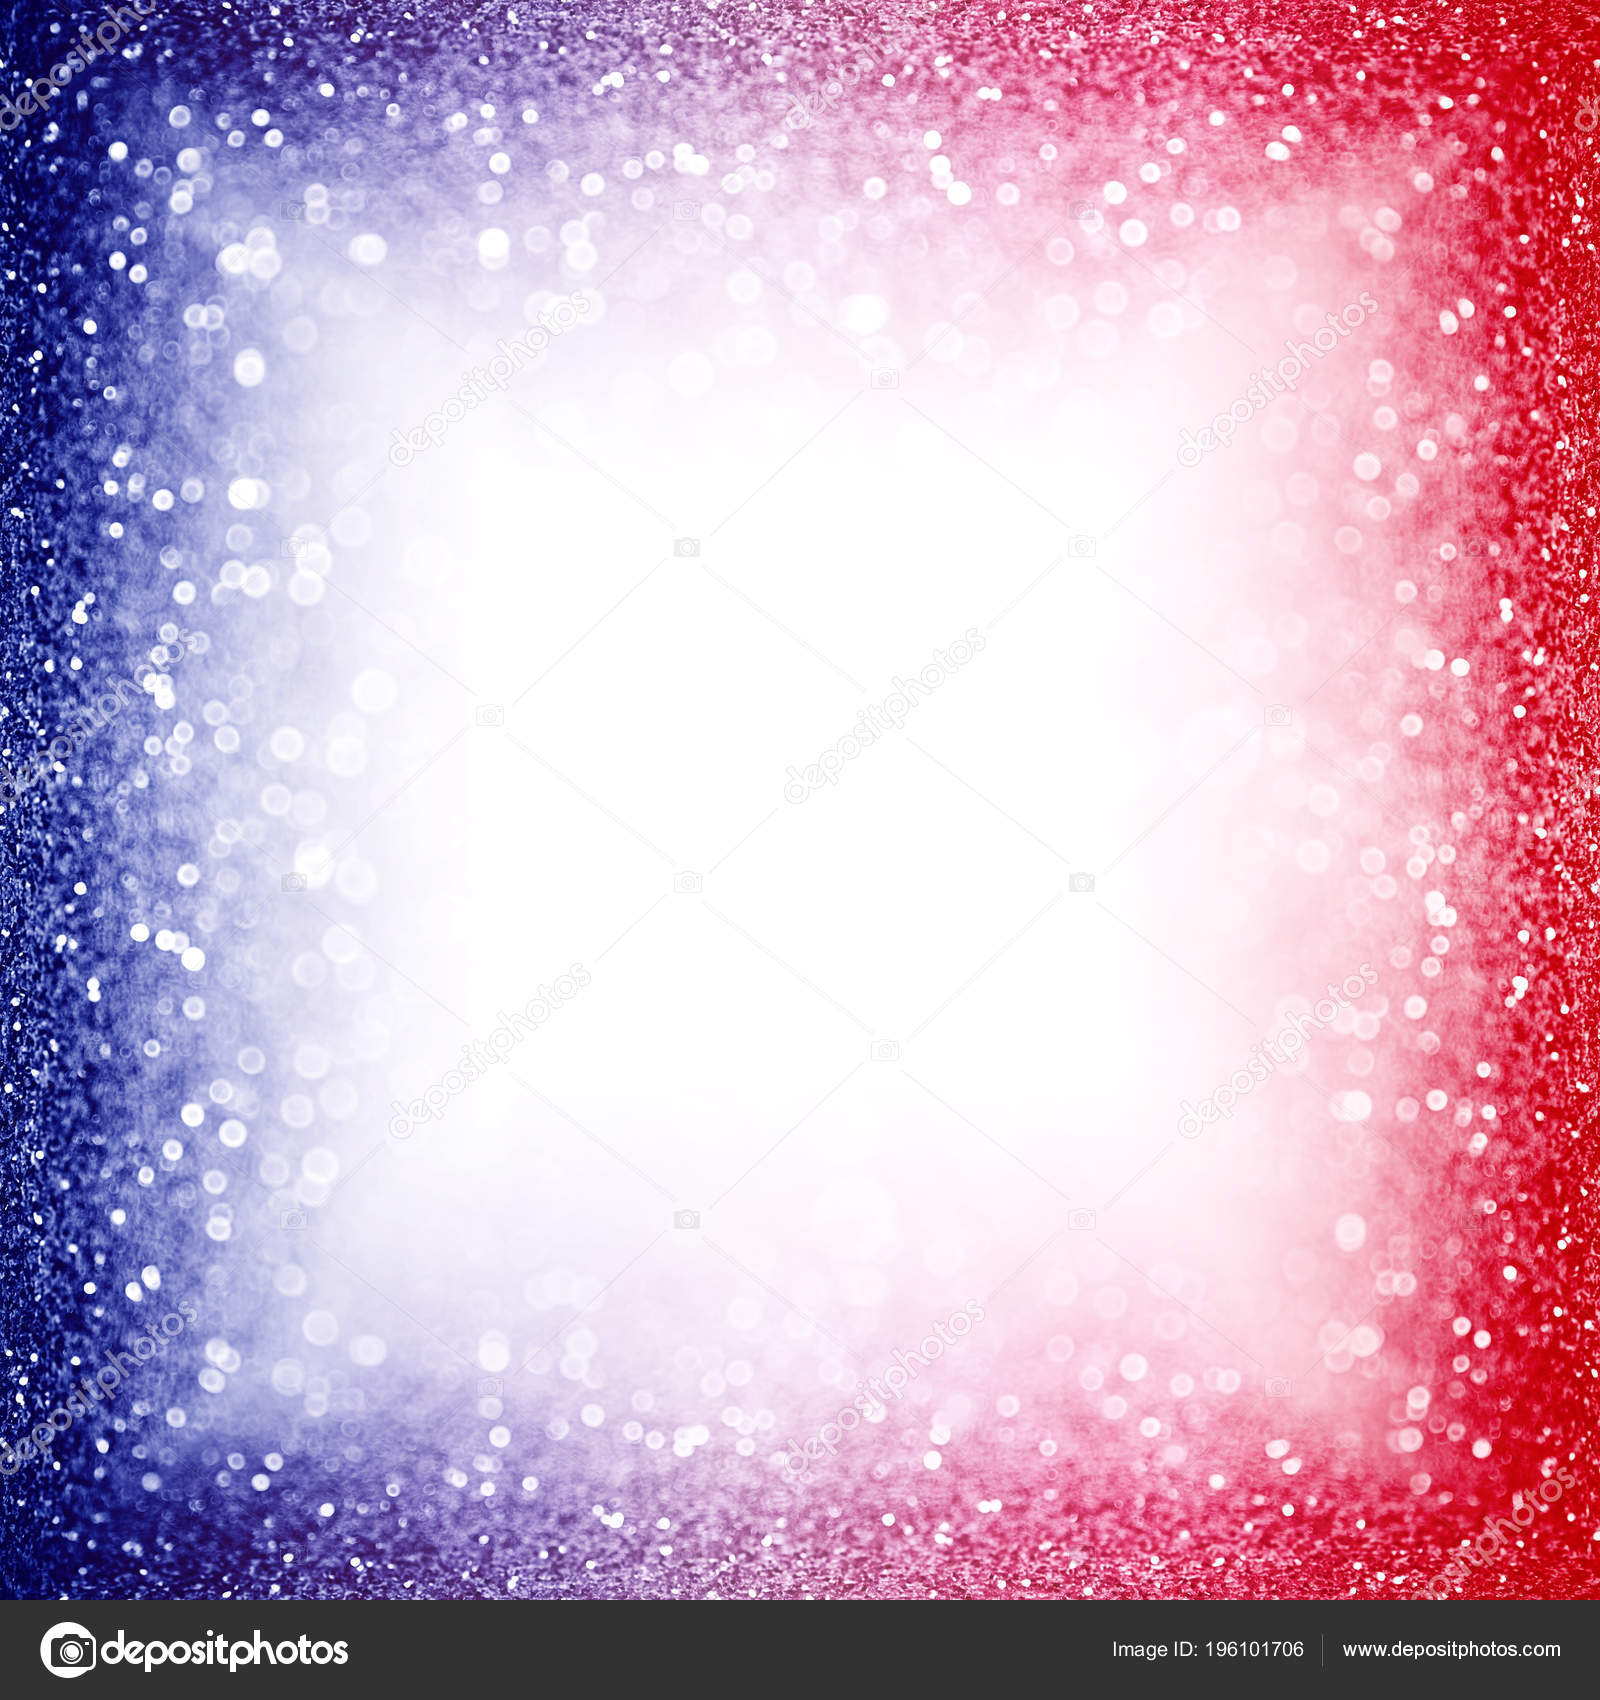 Abstract Patriotic Red White Blue Glitter Sparkle Background